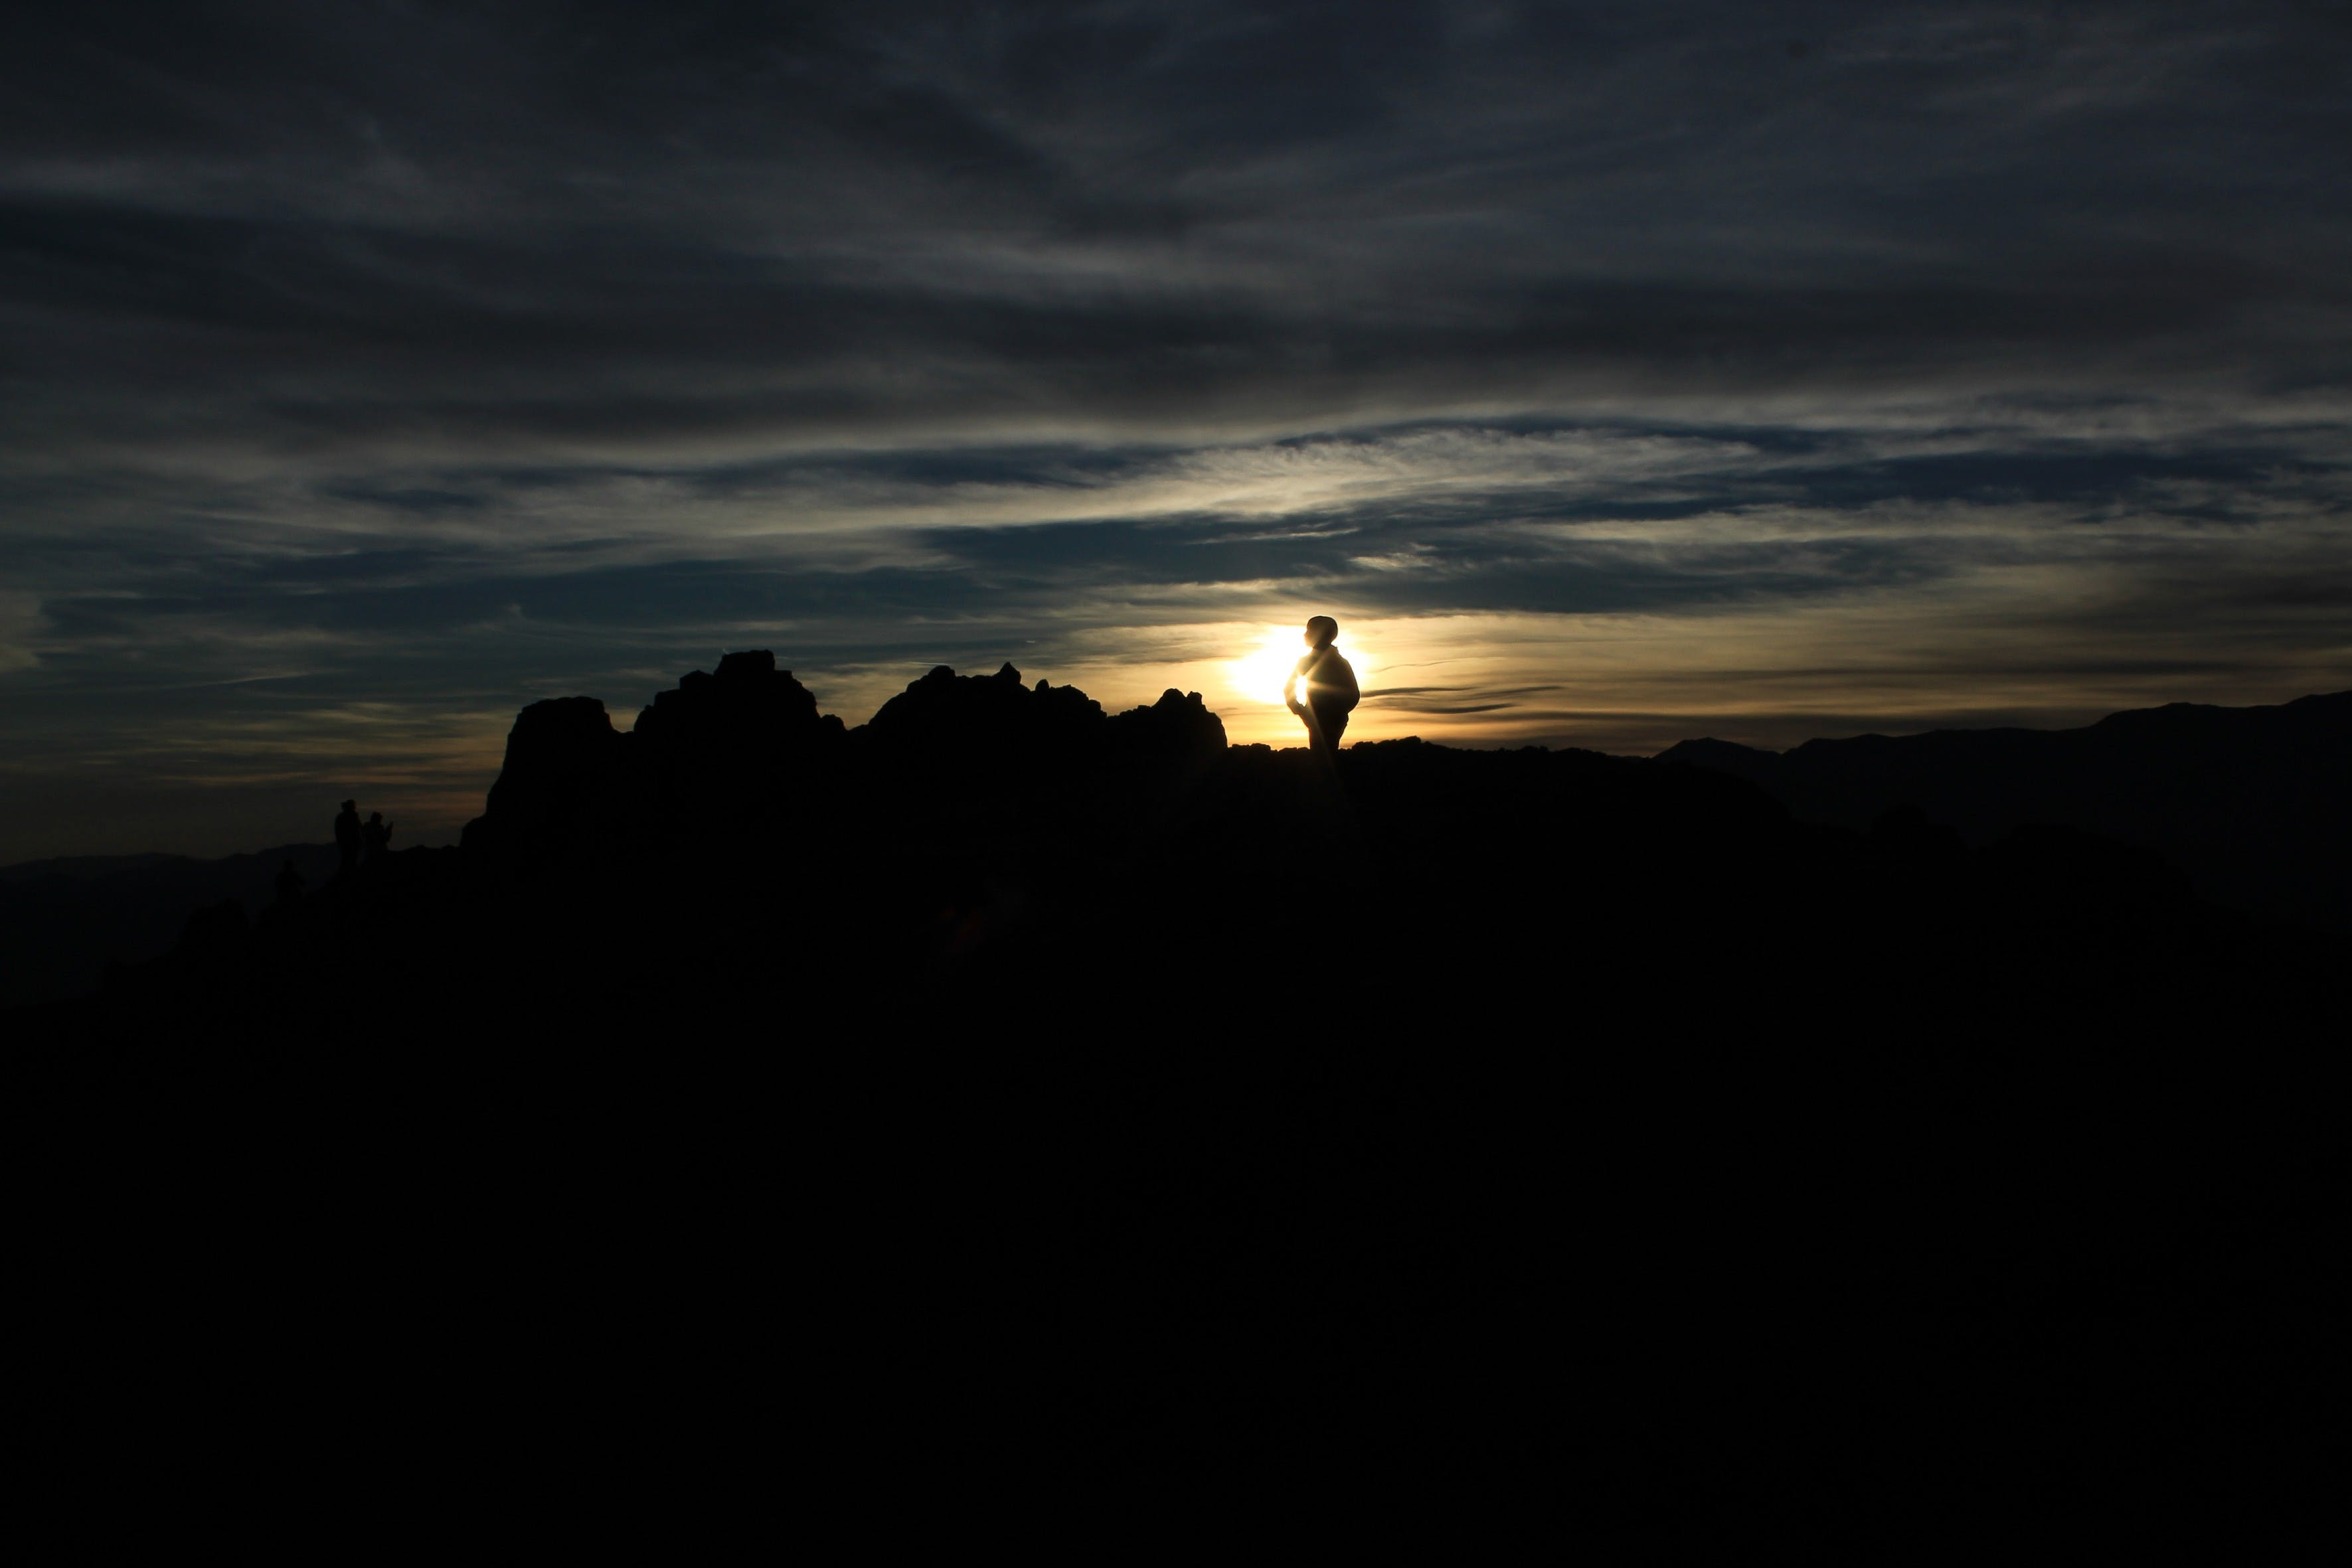 Free stock photo of death valley, shadows, sunset, two people